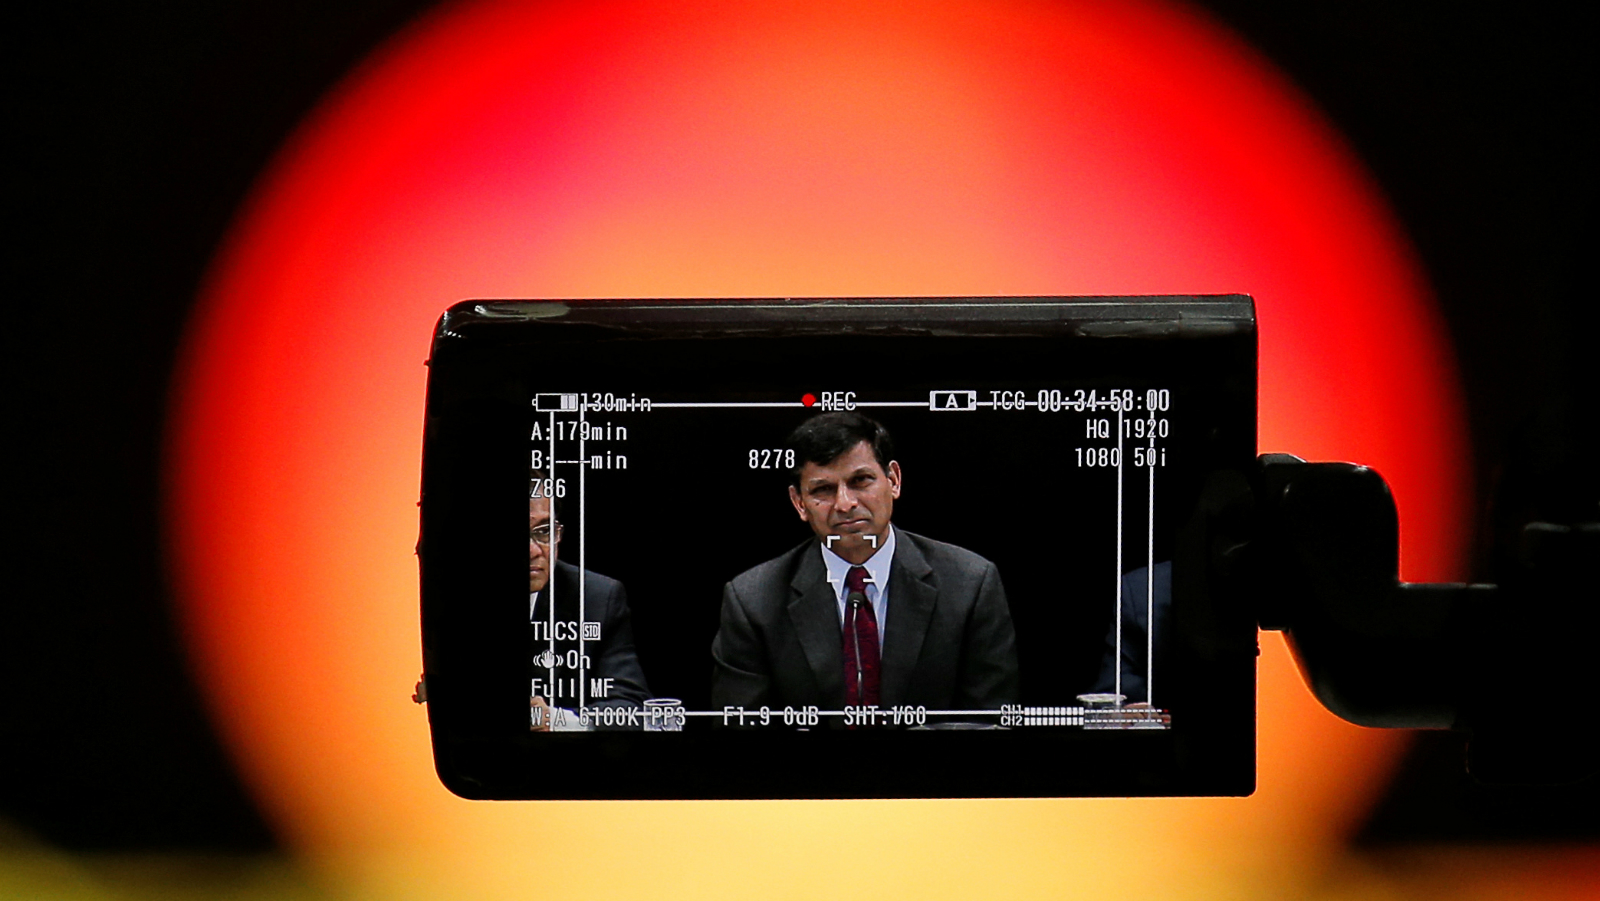 Reserve Bank of India (RBI) Governor Raghuram Rajan is seen in a TV camera's viewfinder as he attends a news conference after the bimonthly monetary policy review in Mumbai, India June 7, 2016.